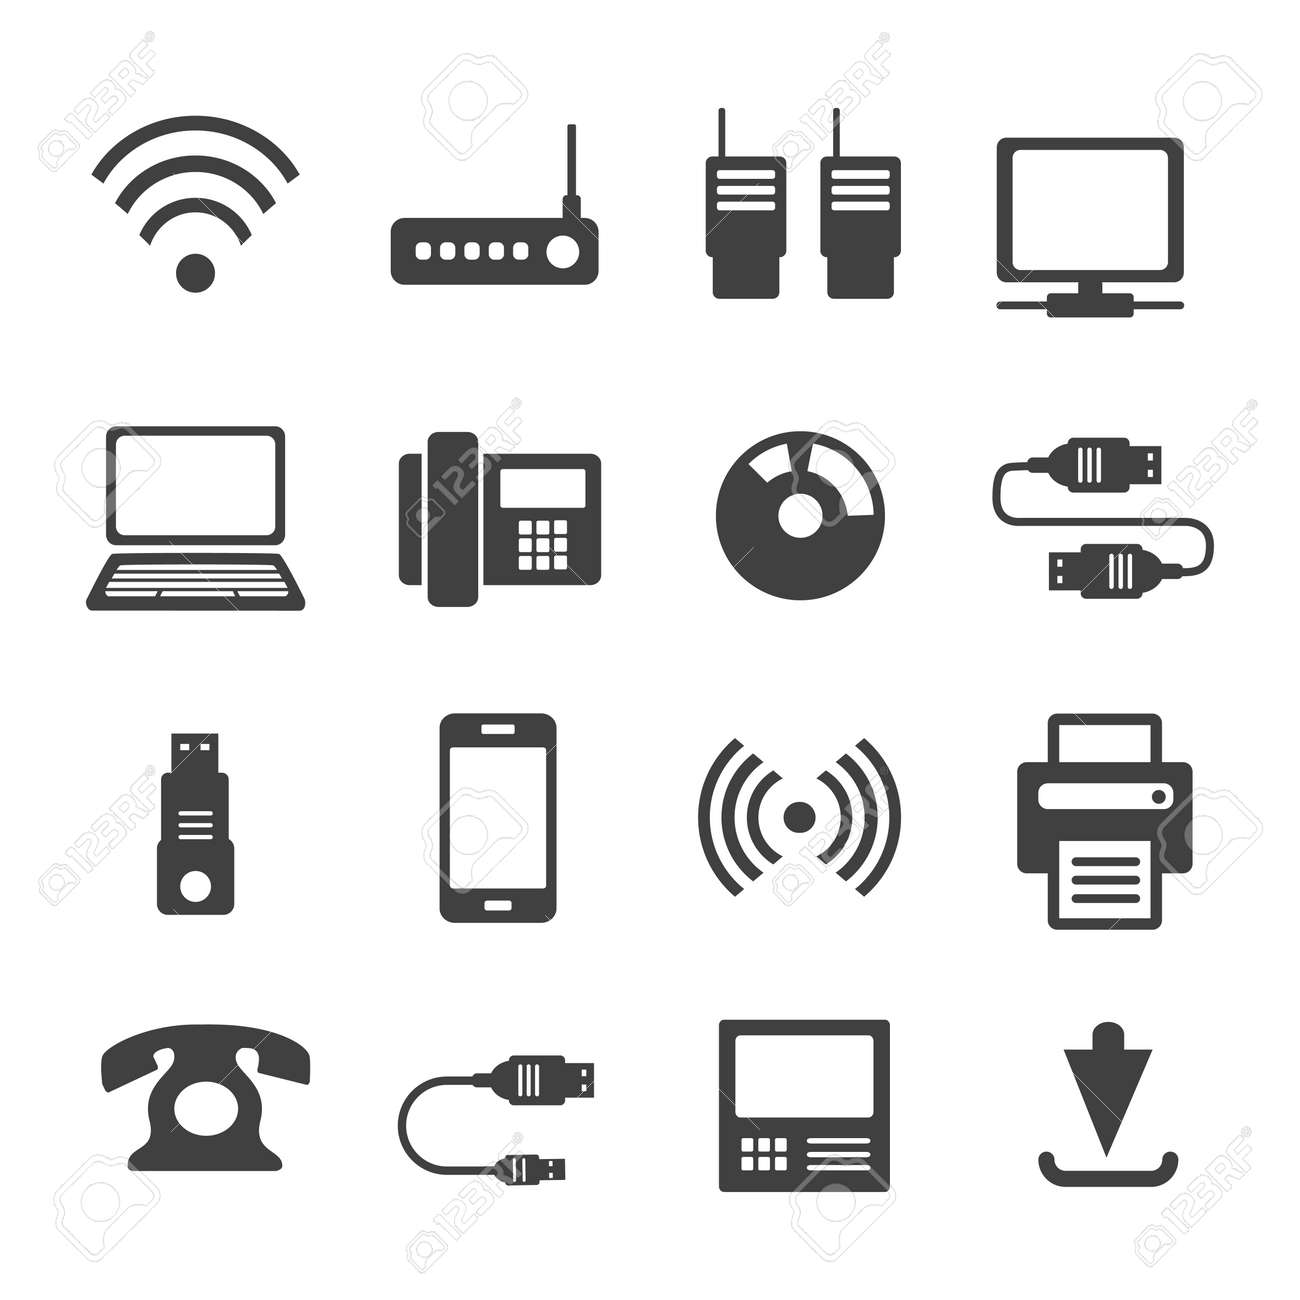 Icons media Communications. A set of internet icons with different Business objects. Computer, telephone, communication, and communication and presentation of business ideas. - 129976638